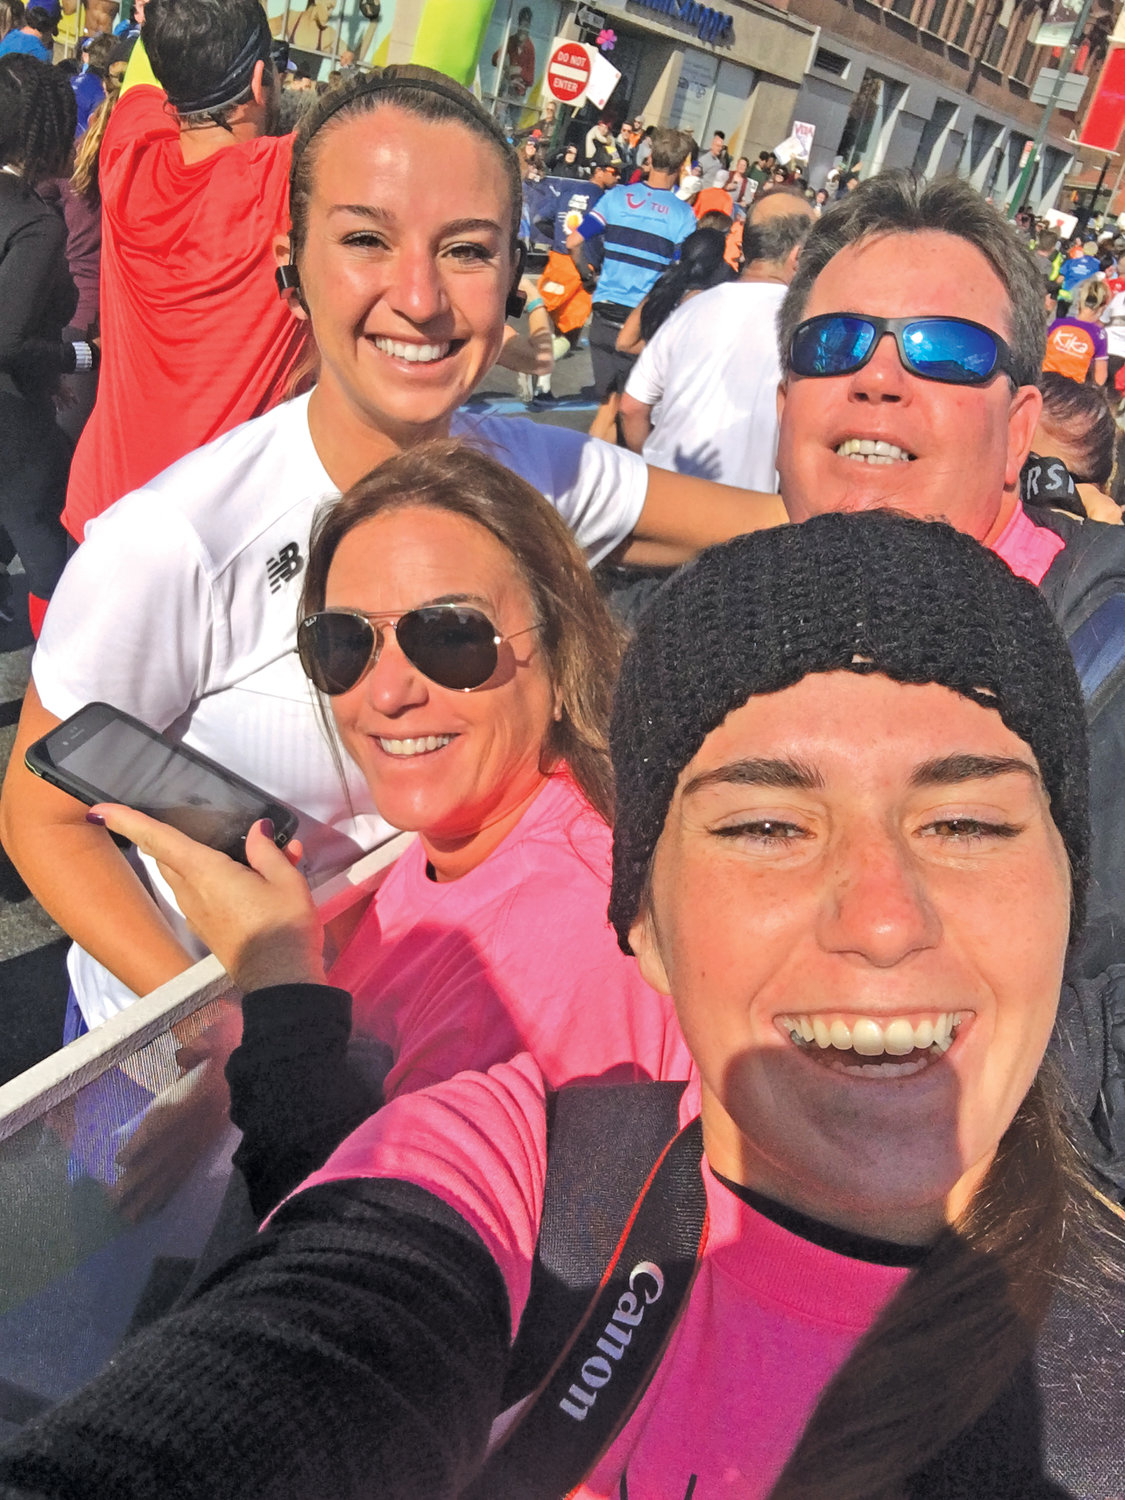 Tonya Bettineschi's sister Kira, bottom right, took a selfie with Tonya, top left, and their parents, Audrea and Joseph, during the New York City Marathon on Sunday.